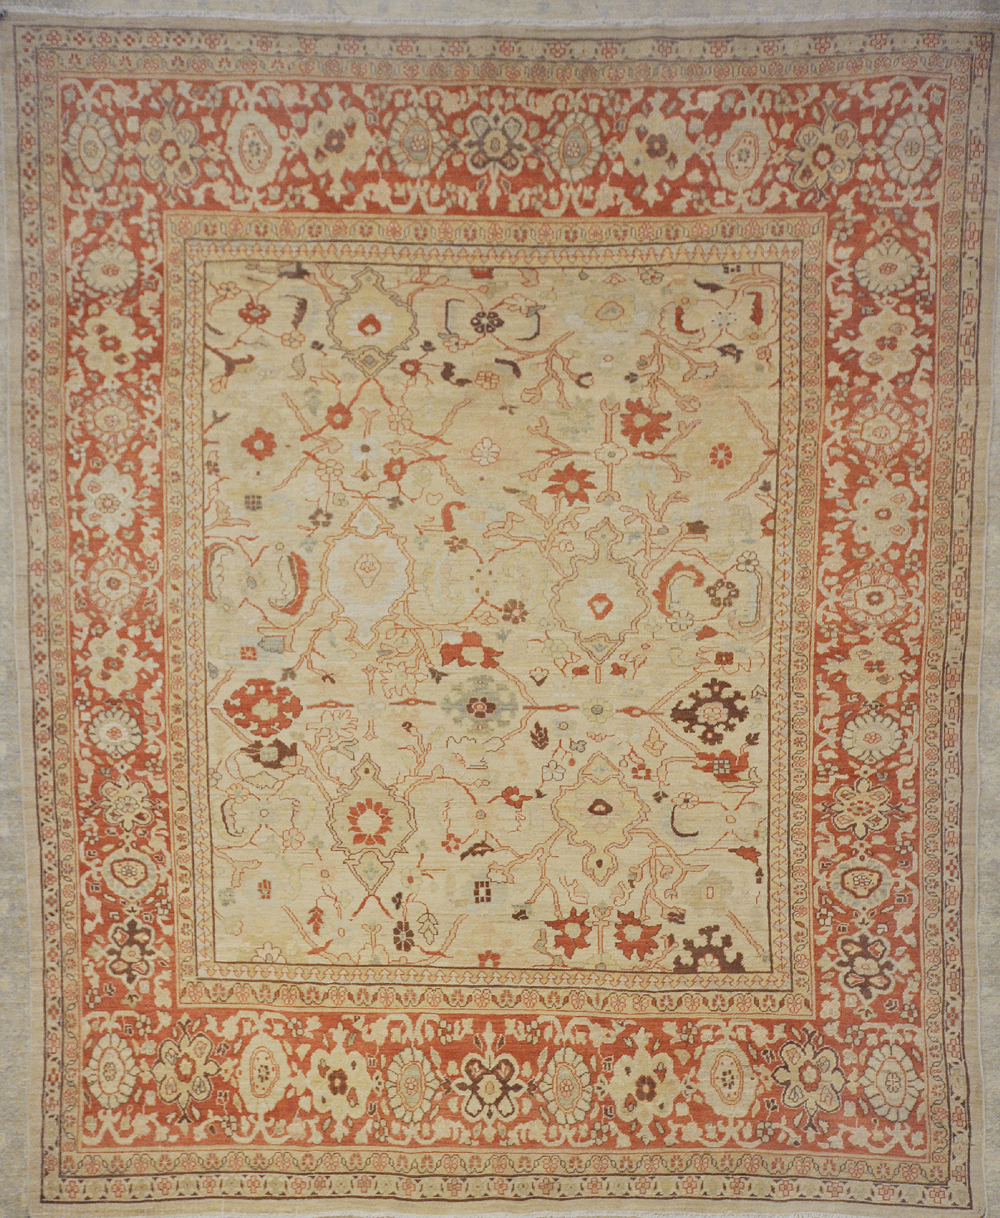 Finest Ziegler Sultanabad Rugs and more oriental carpet 35366-